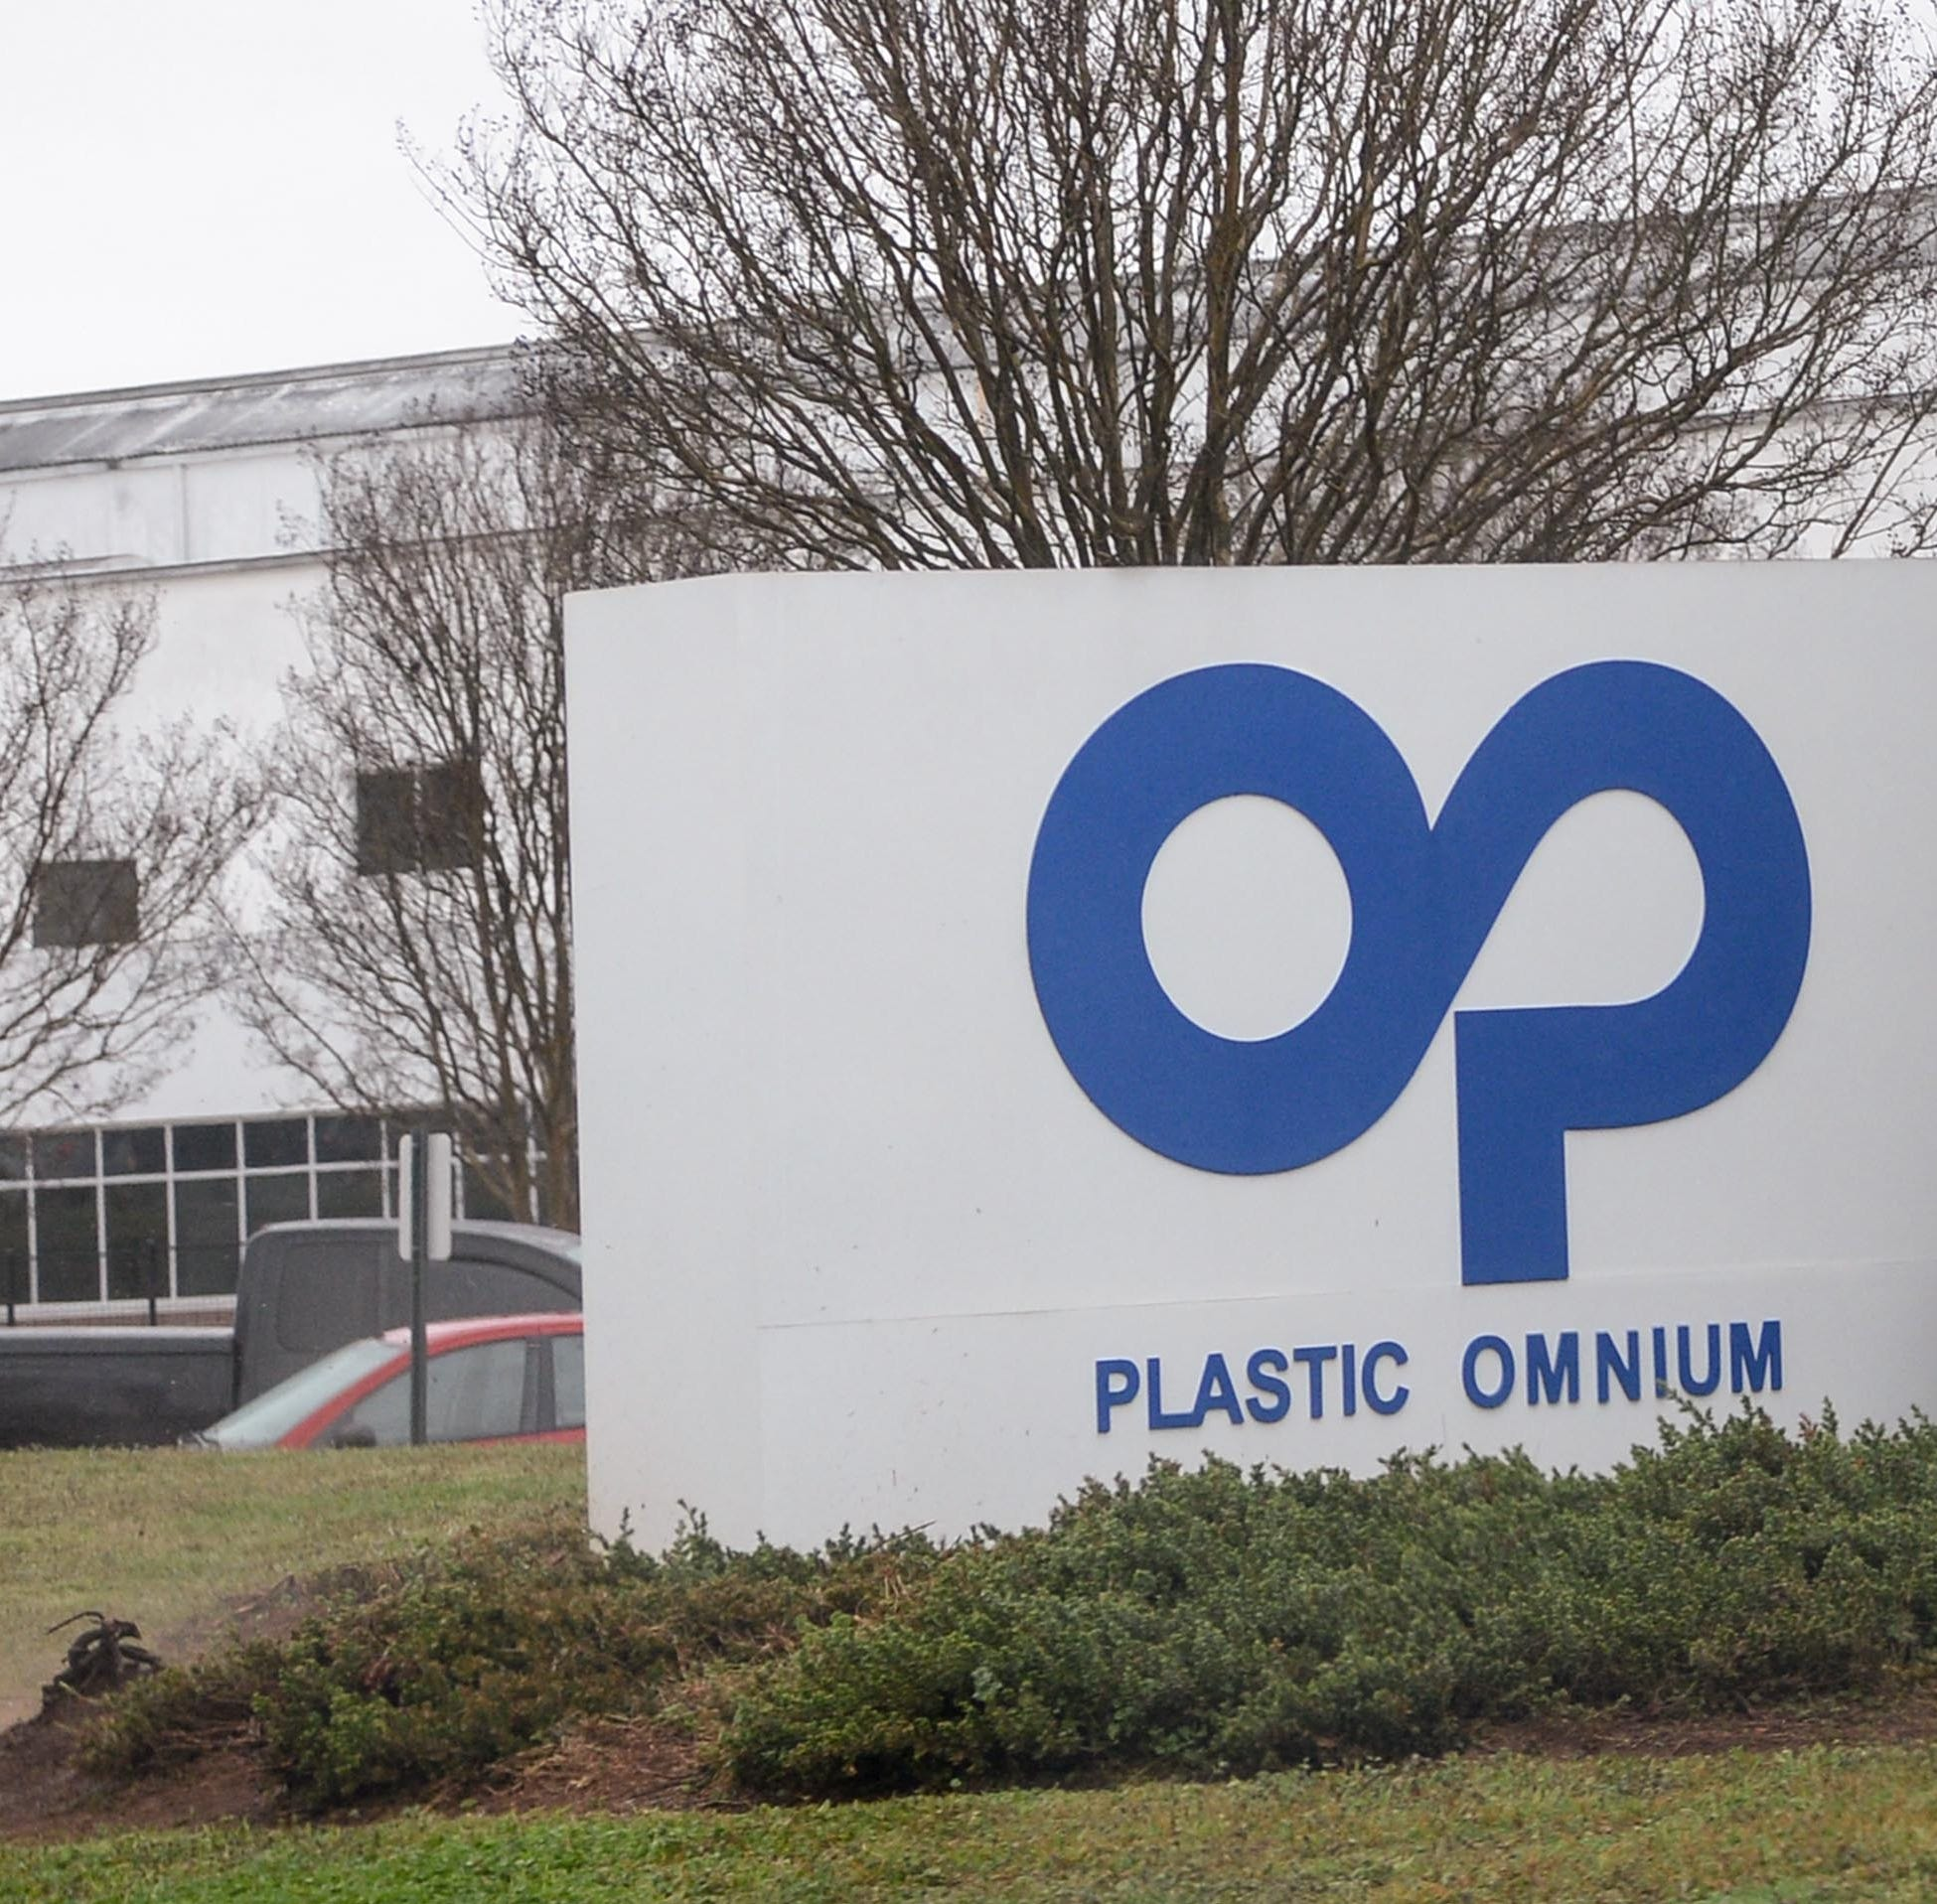 350 jobs being eliminated at Anderson's Plastic Omnium plant by June